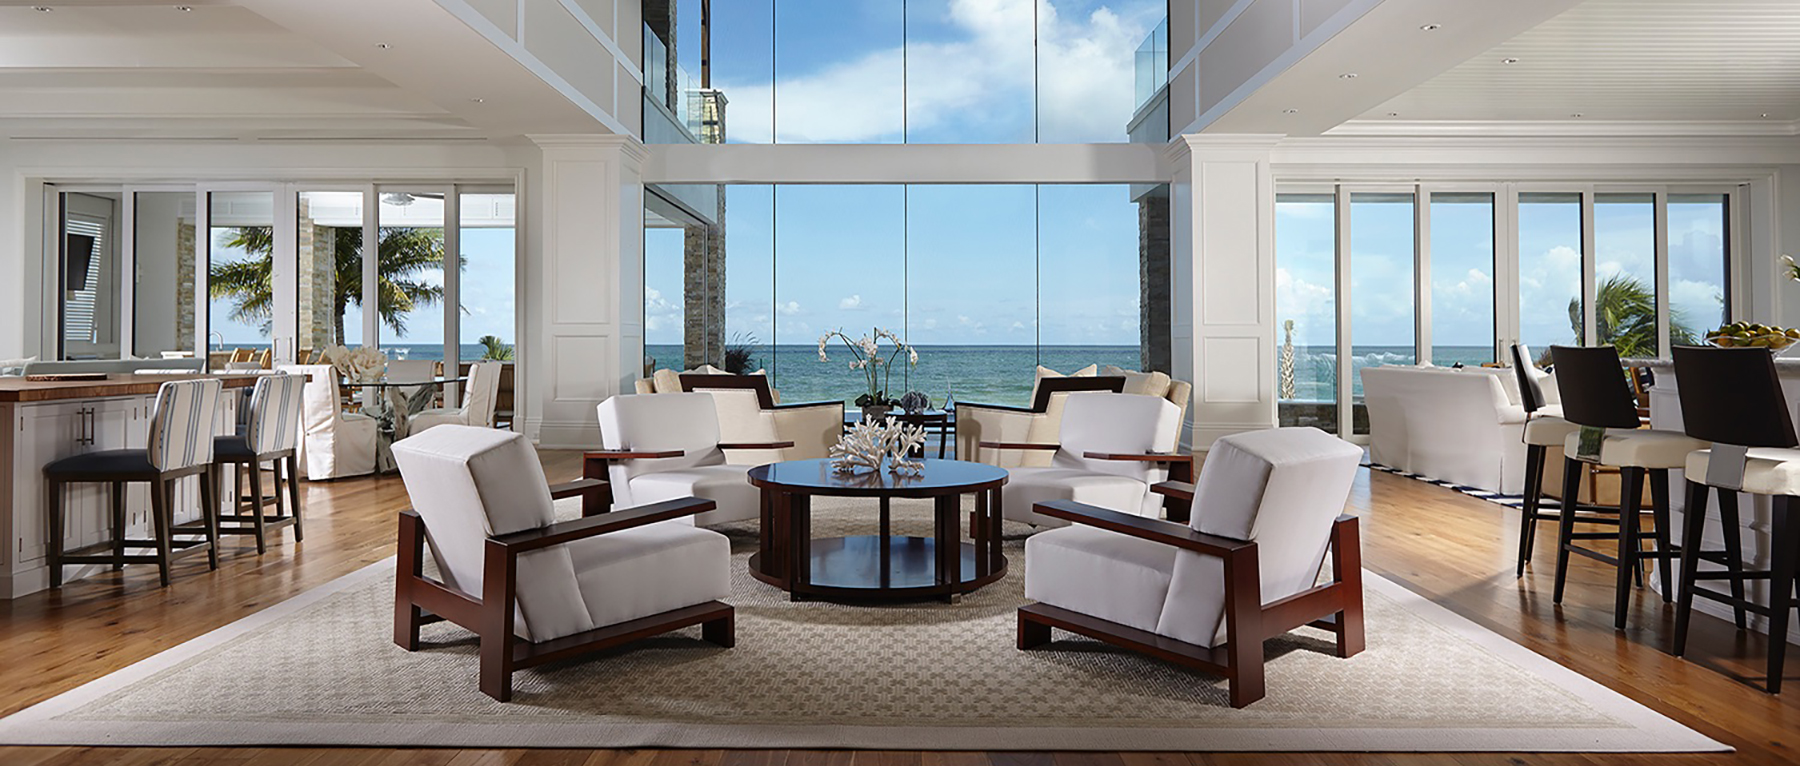 South Florida Interior Design, Palm Beach Interior Design